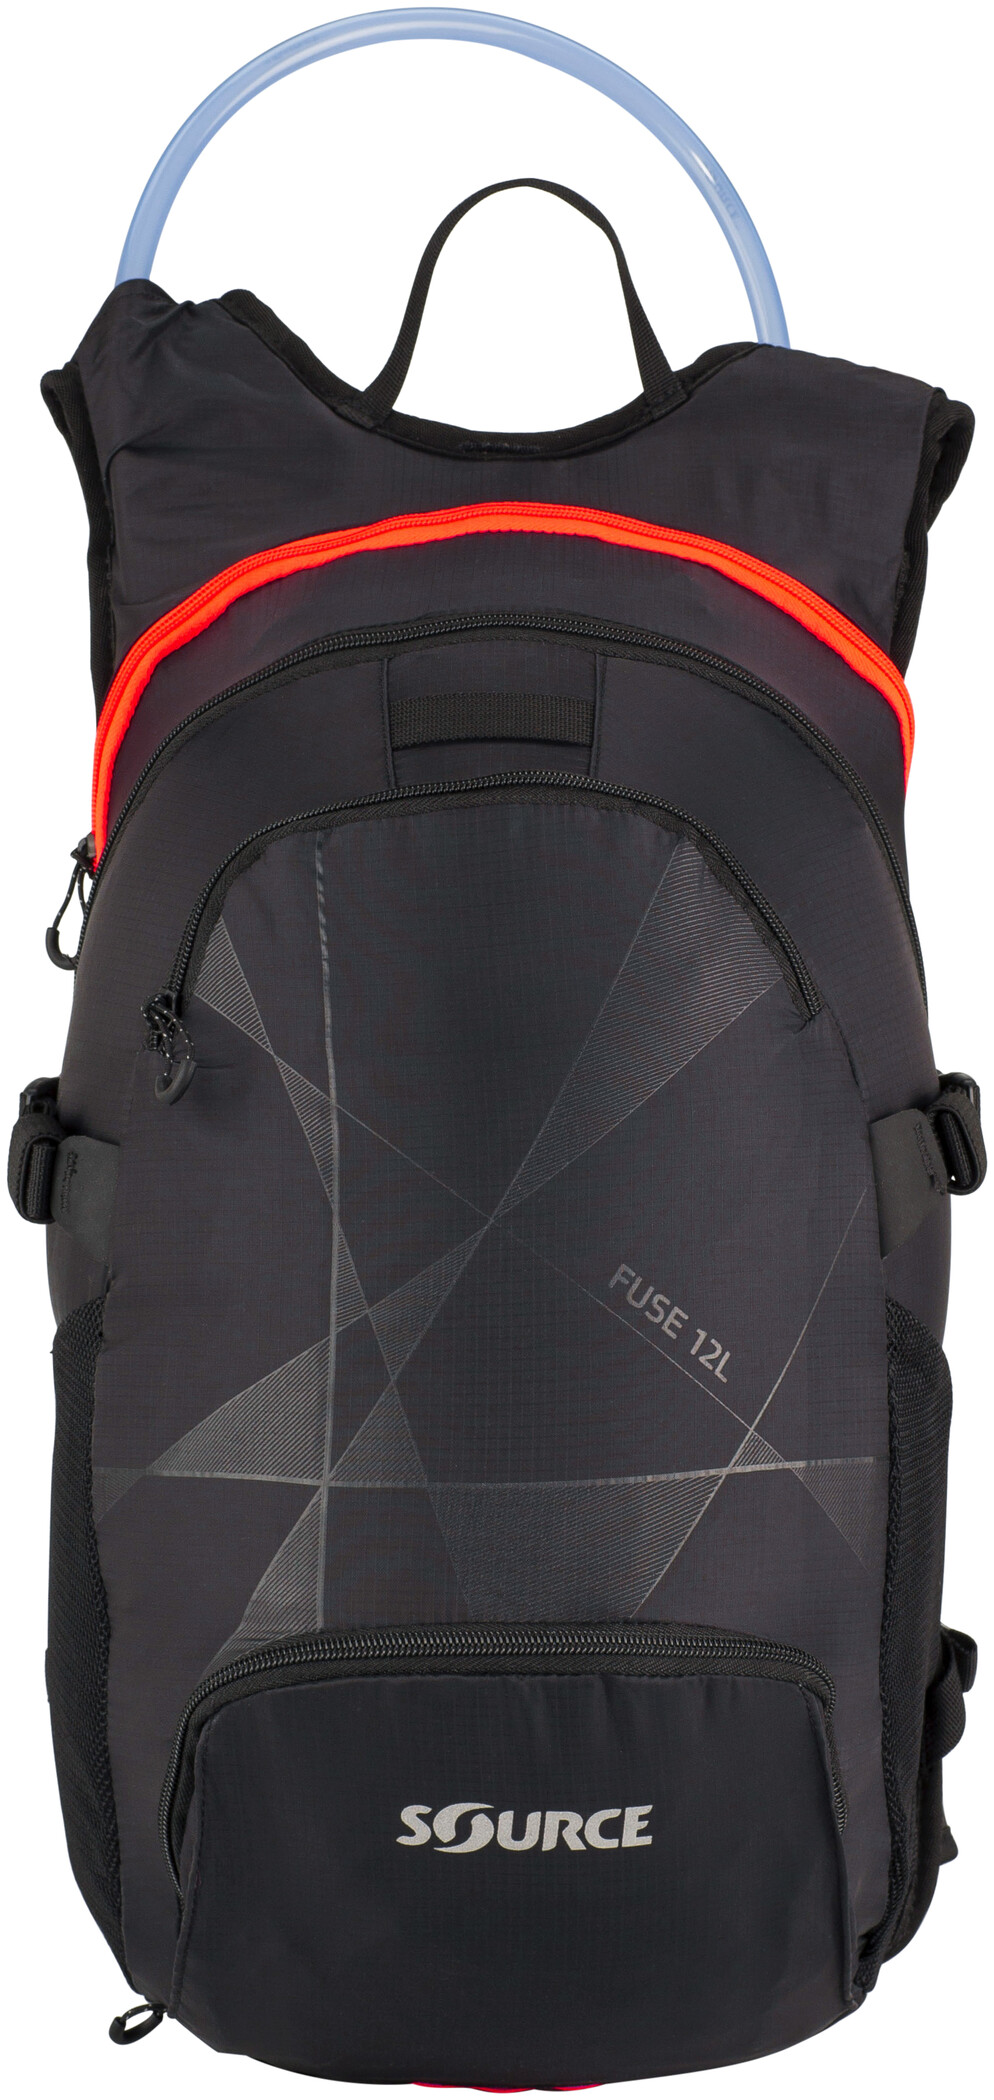 SOURCE Fuse Hydration Pack 3+9l, black/orange (2019) | item_misc